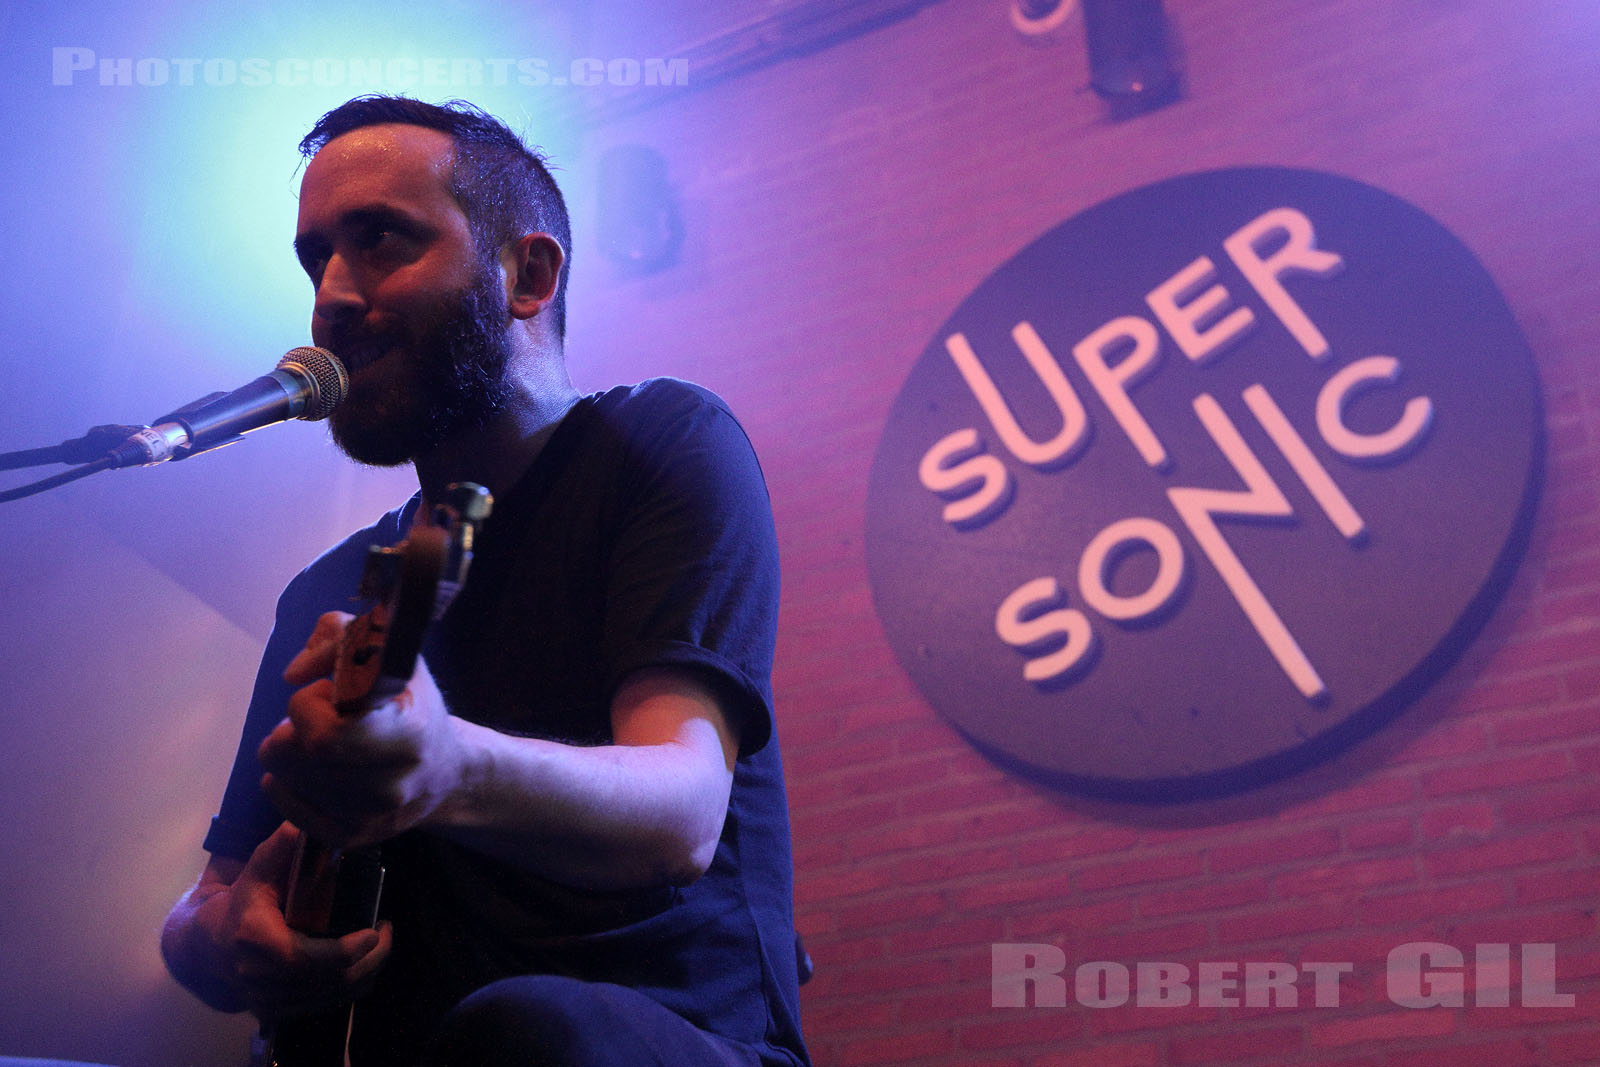 MILES OLIVER - 2016-05-12 - PARIS - Supersonic